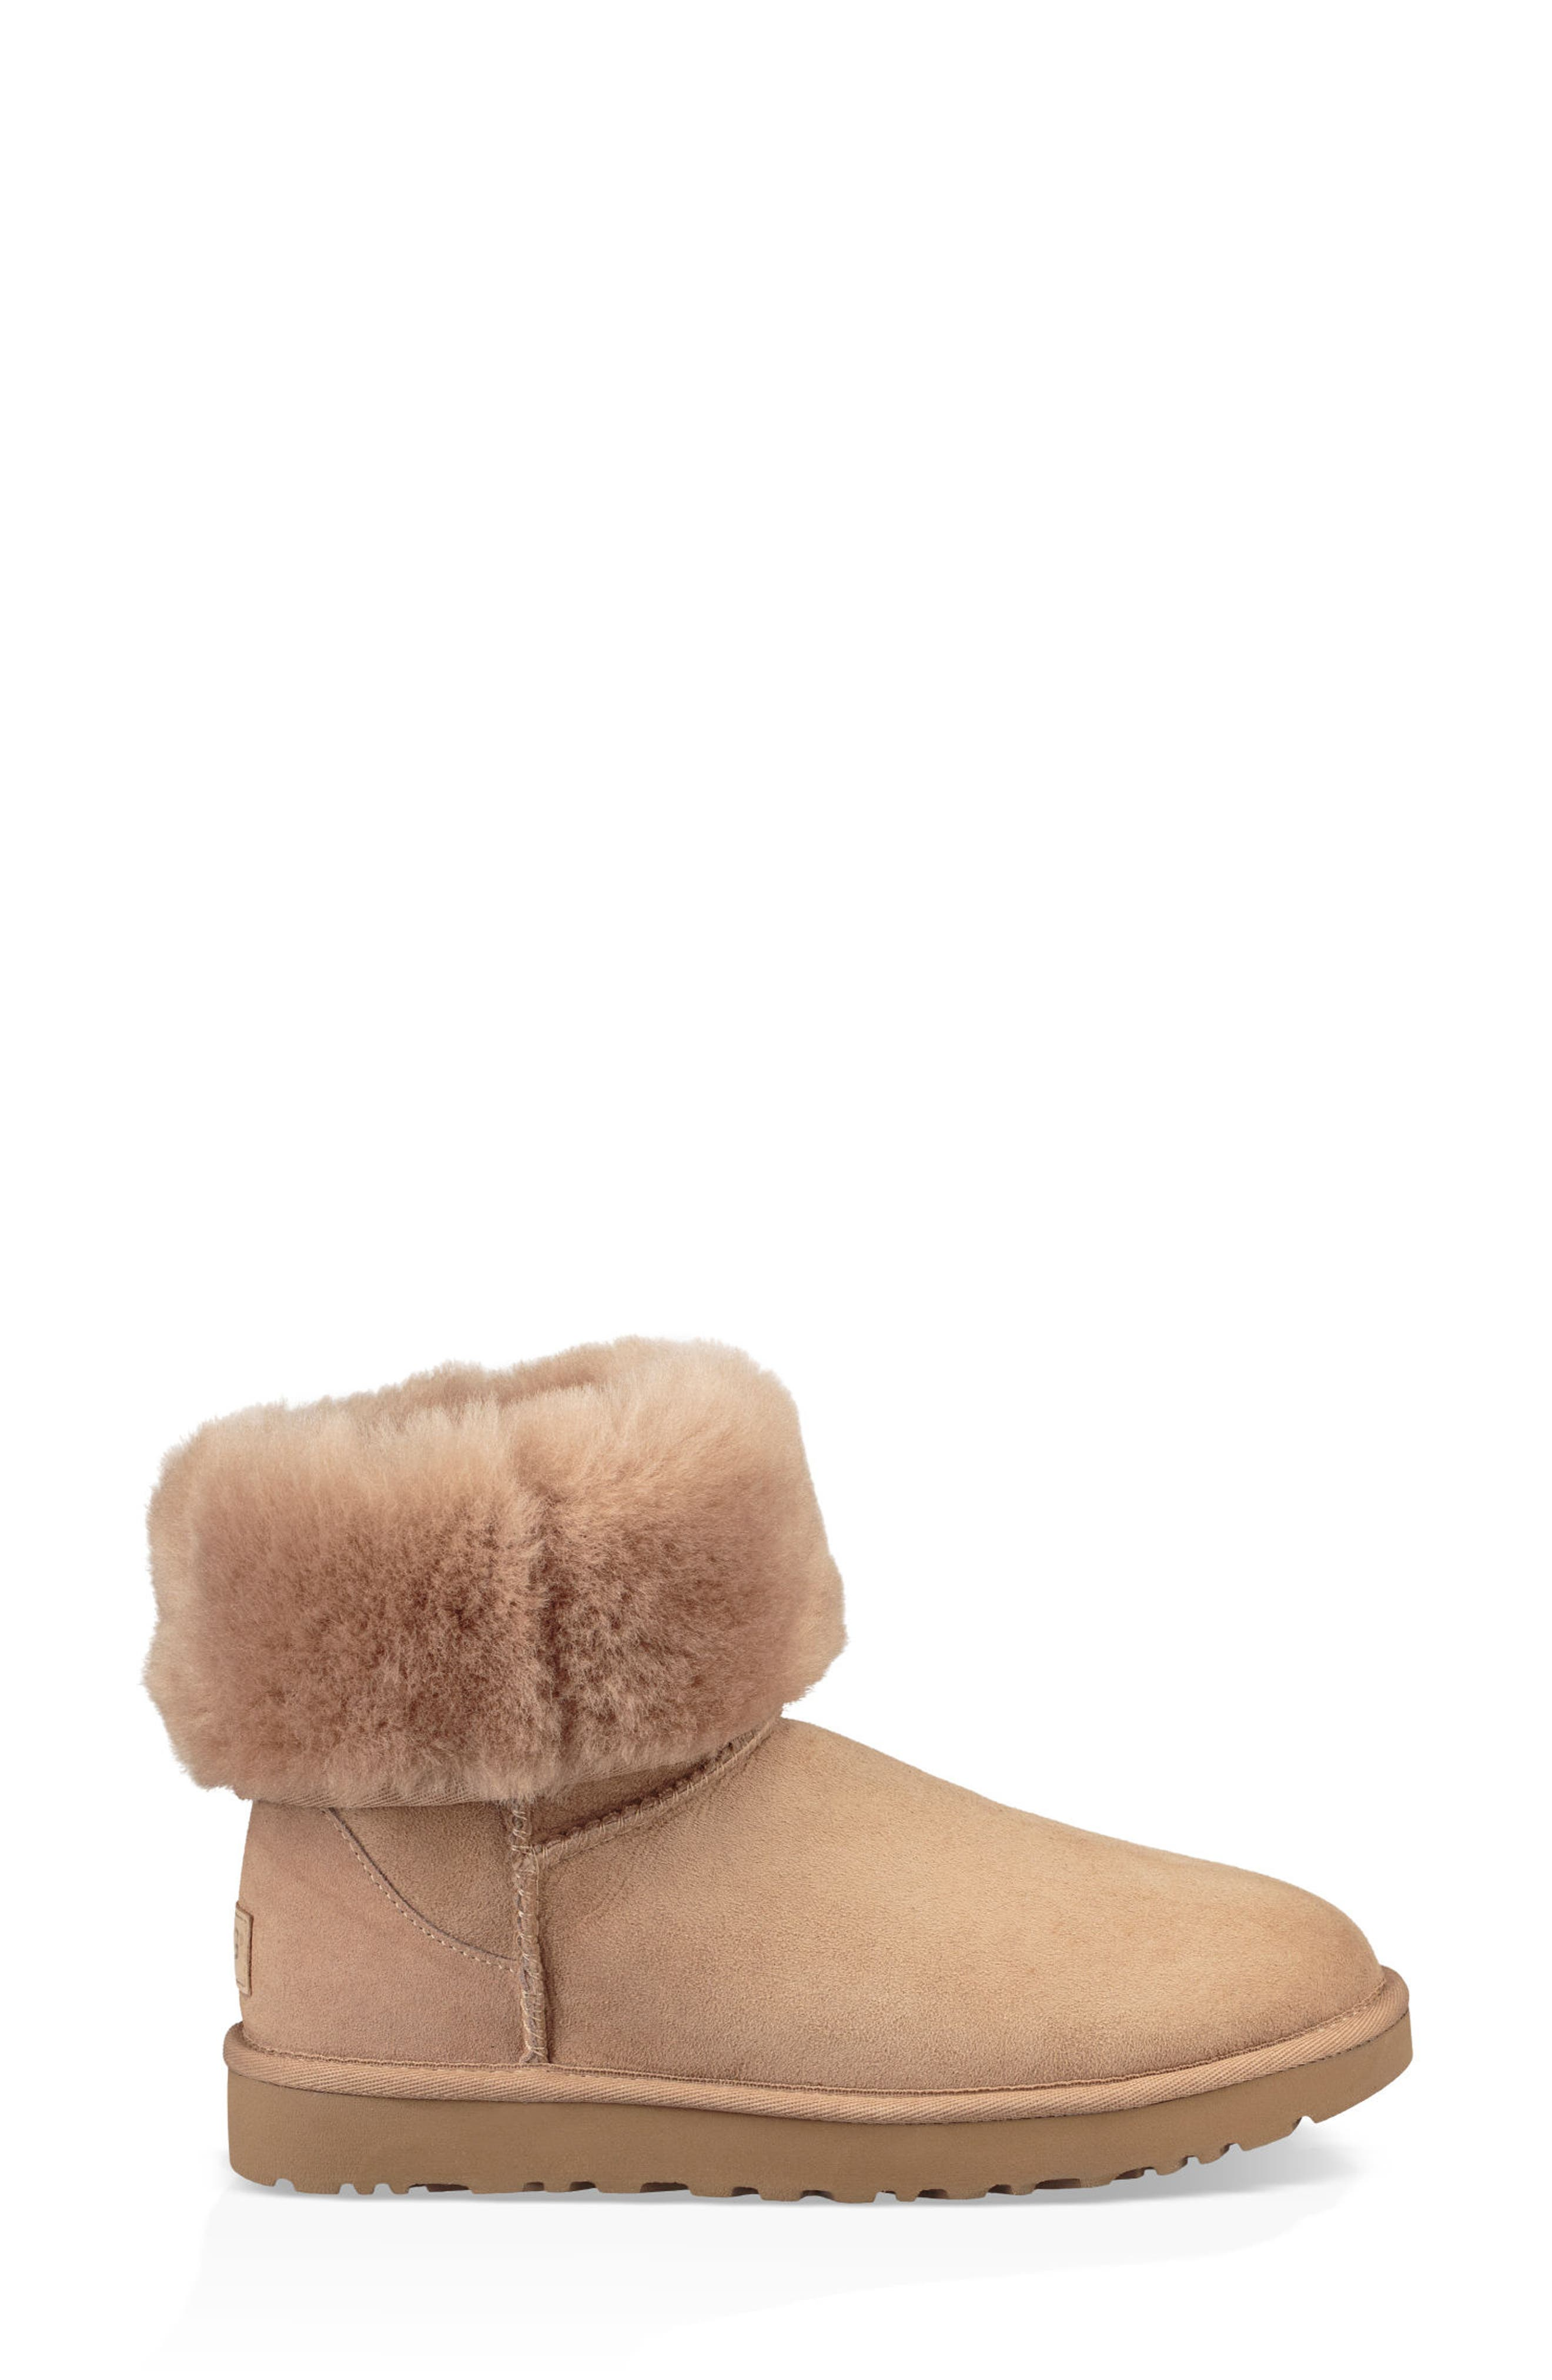 'Classic II' Genuine Shearling Lined Short Boot,                             Alternate thumbnail 6, color,                             Fawn Suede